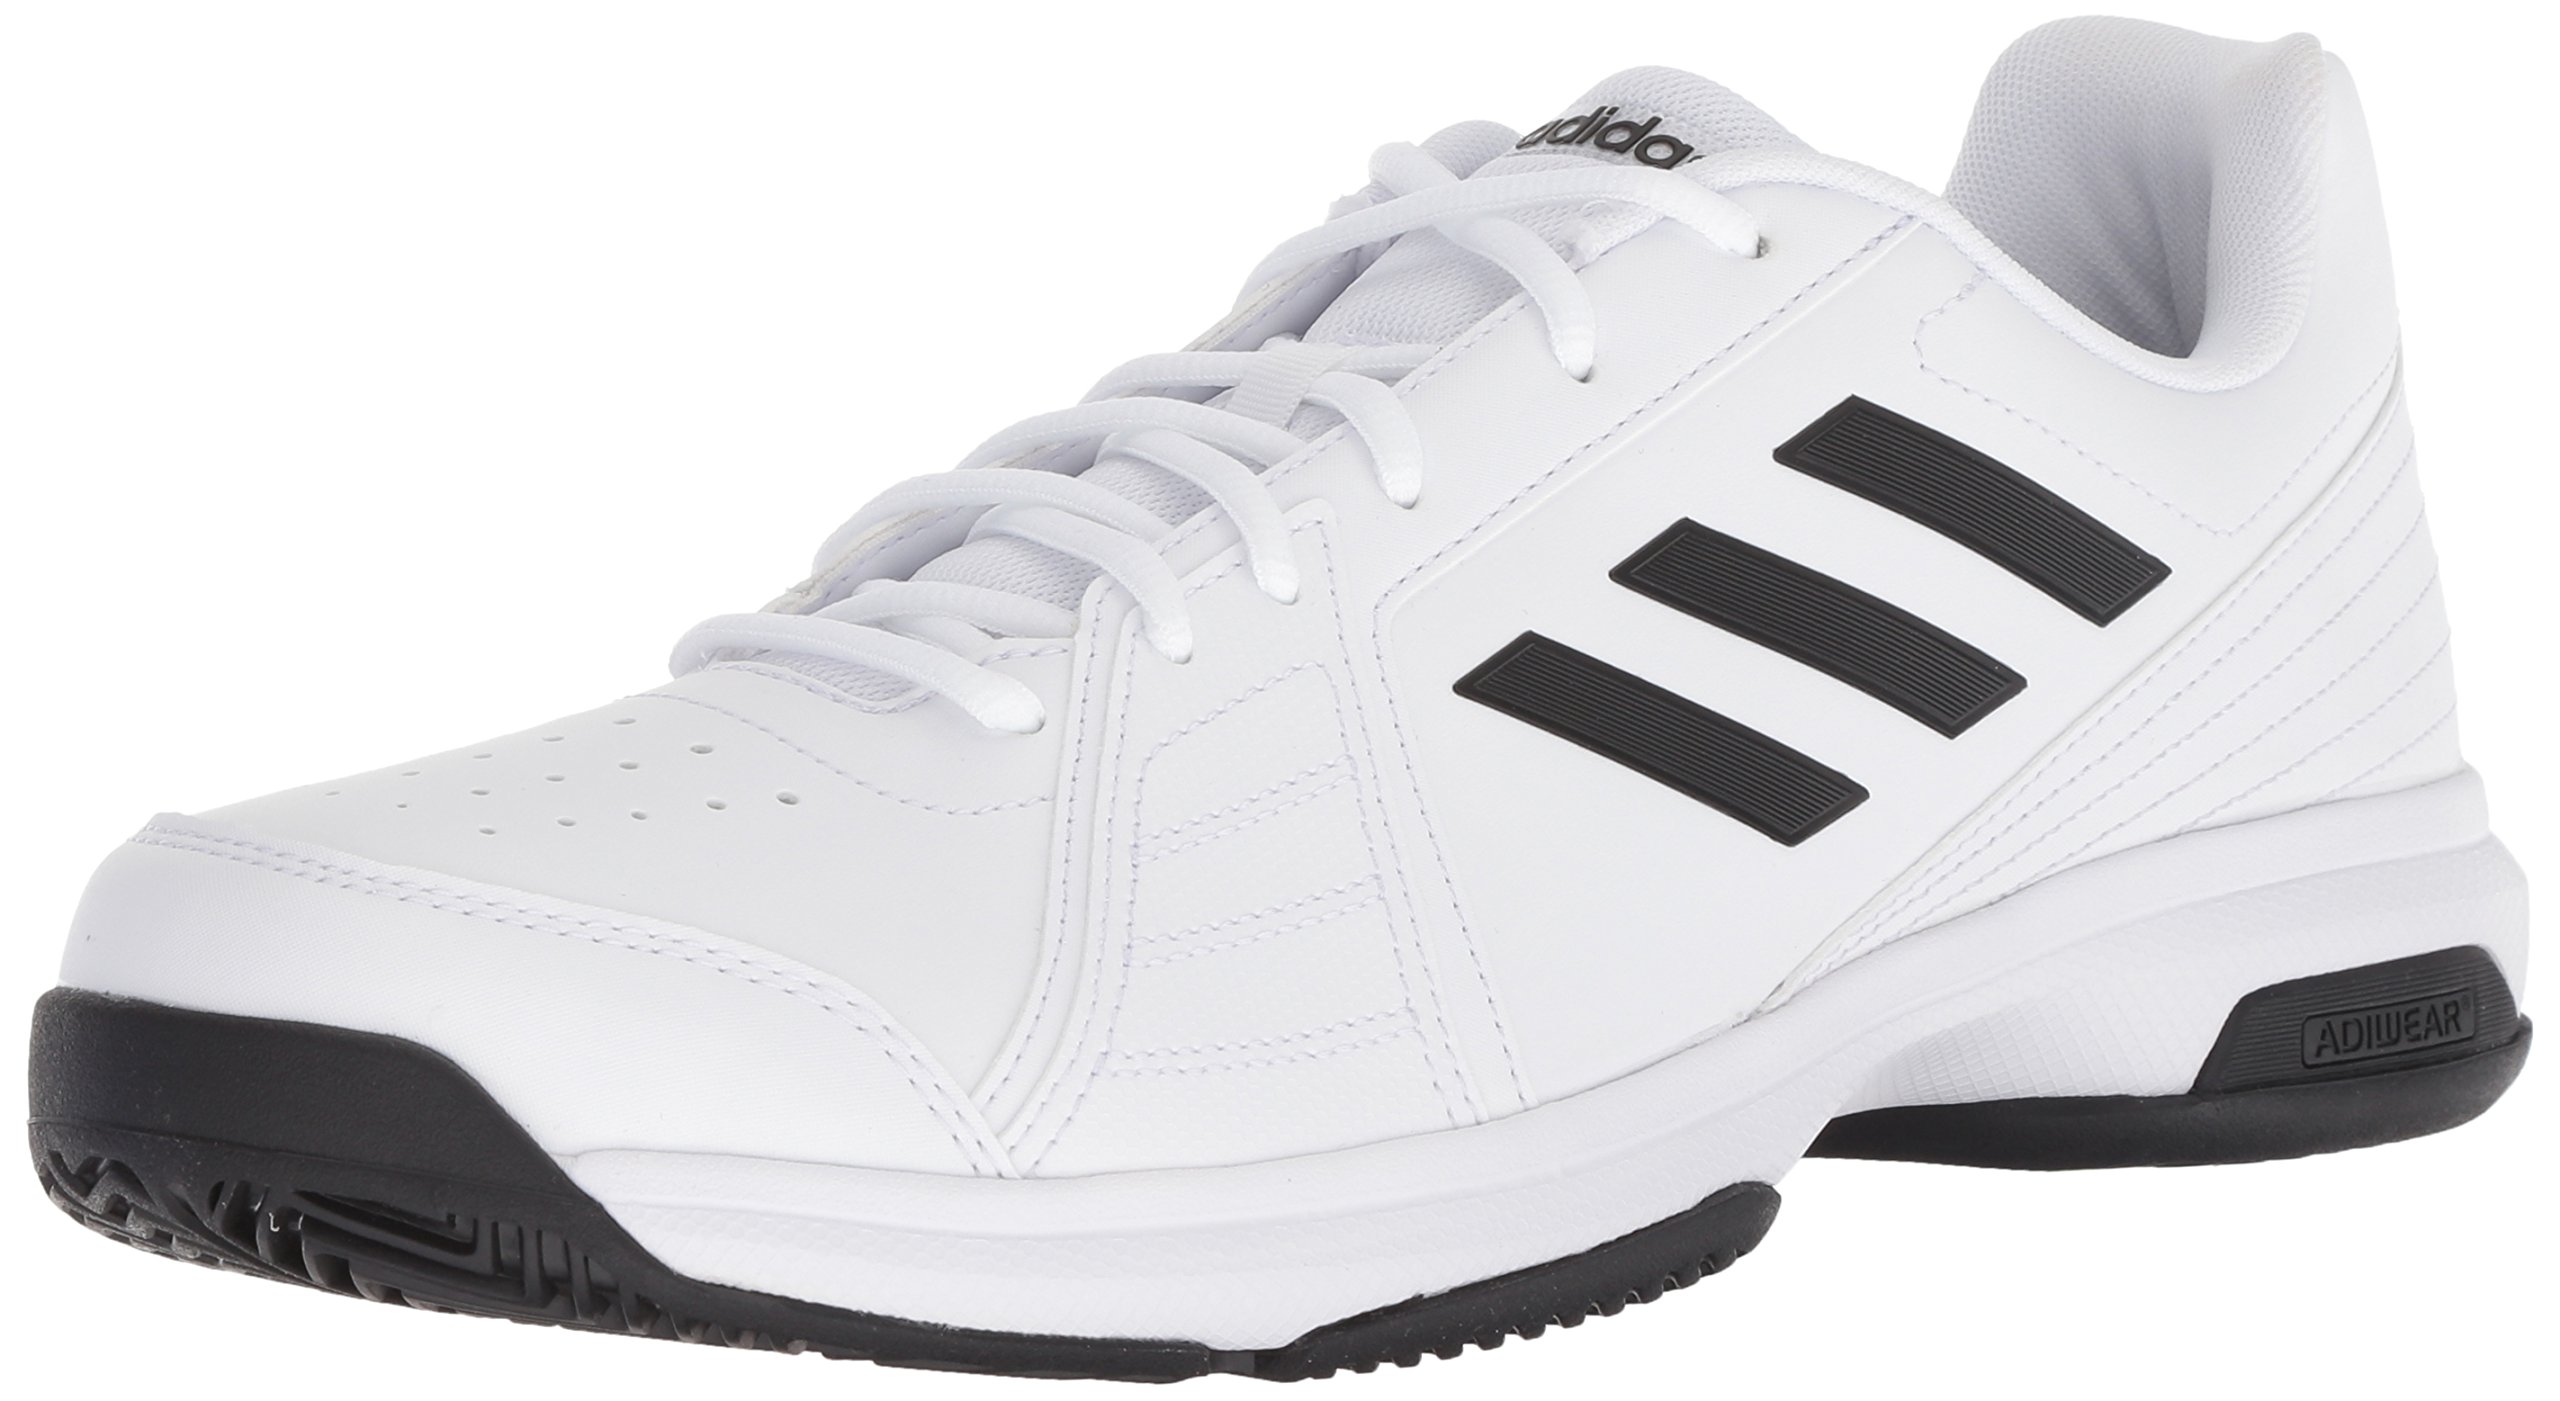 adidas Men's Approach Tennis Shoe Black/White, 11 M US